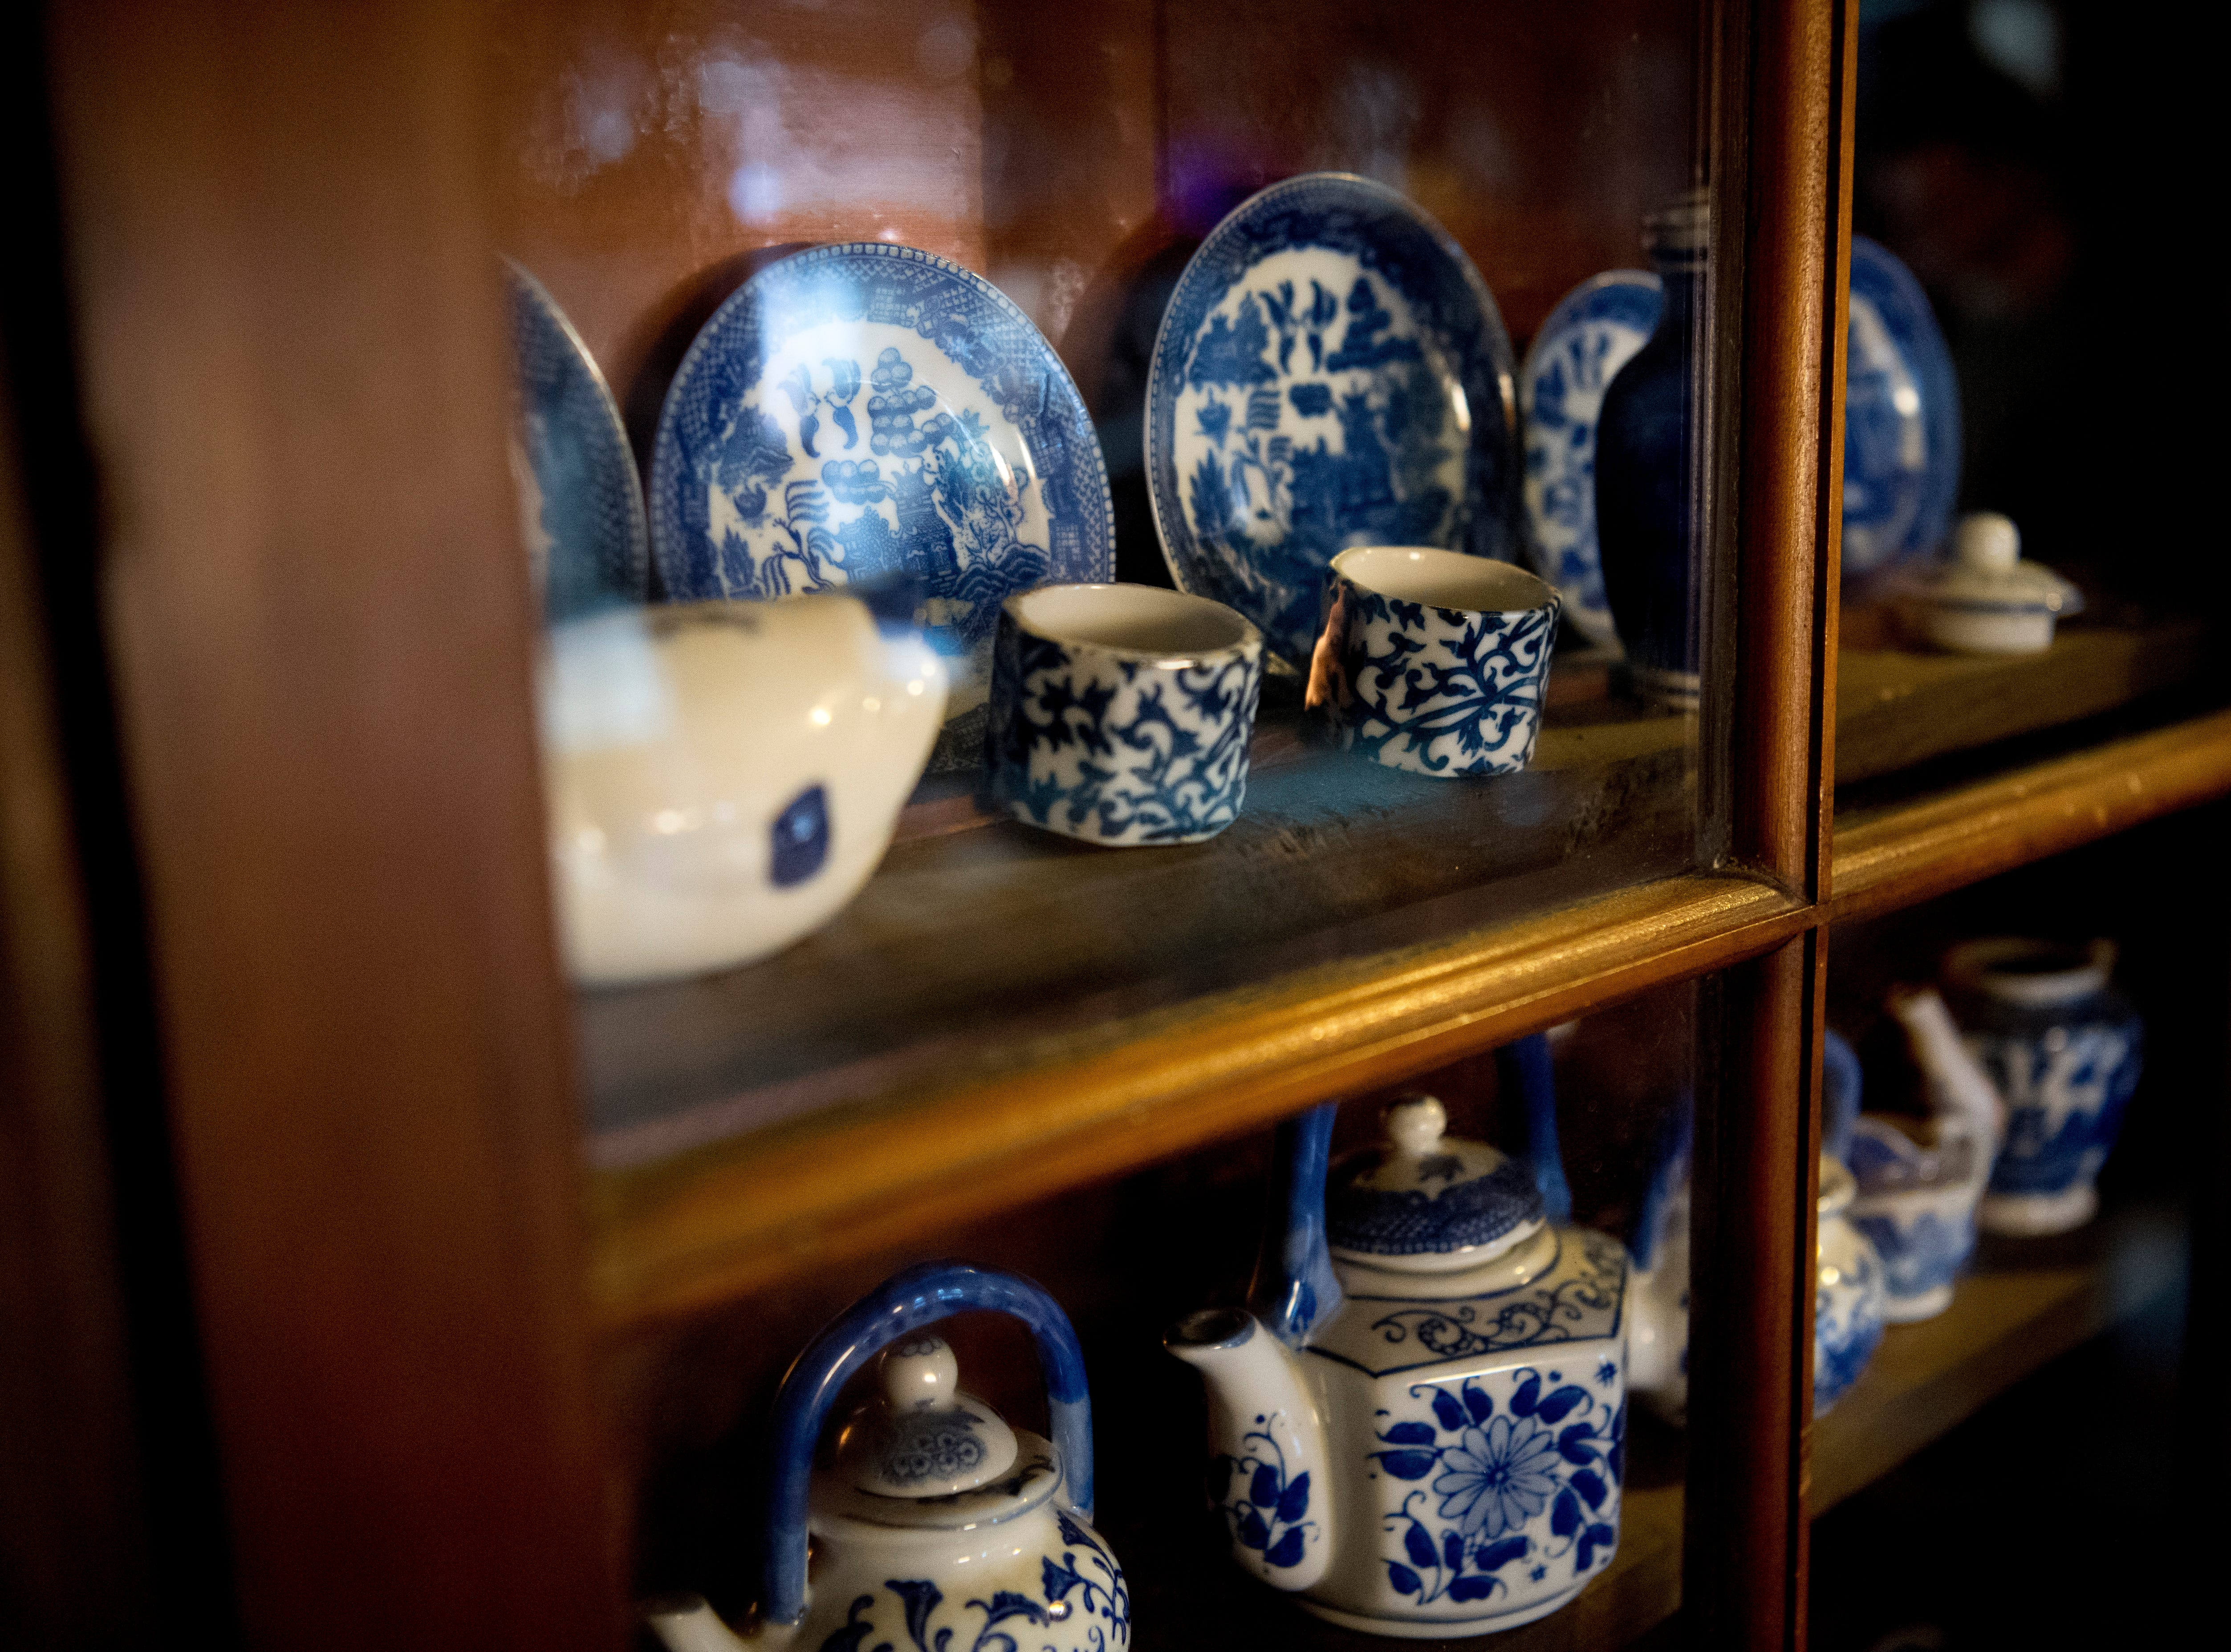 Vintage china sits in a cabinet inside Williamswood Castle in South Knoxville, Tennessee on Thursday, January 17, 2019. The home, modeled after a medieval castle, was built by Julia Tucker in 1991 and took 6 years to complete. Many of the items in the home were sourced from around the Knoxville area.